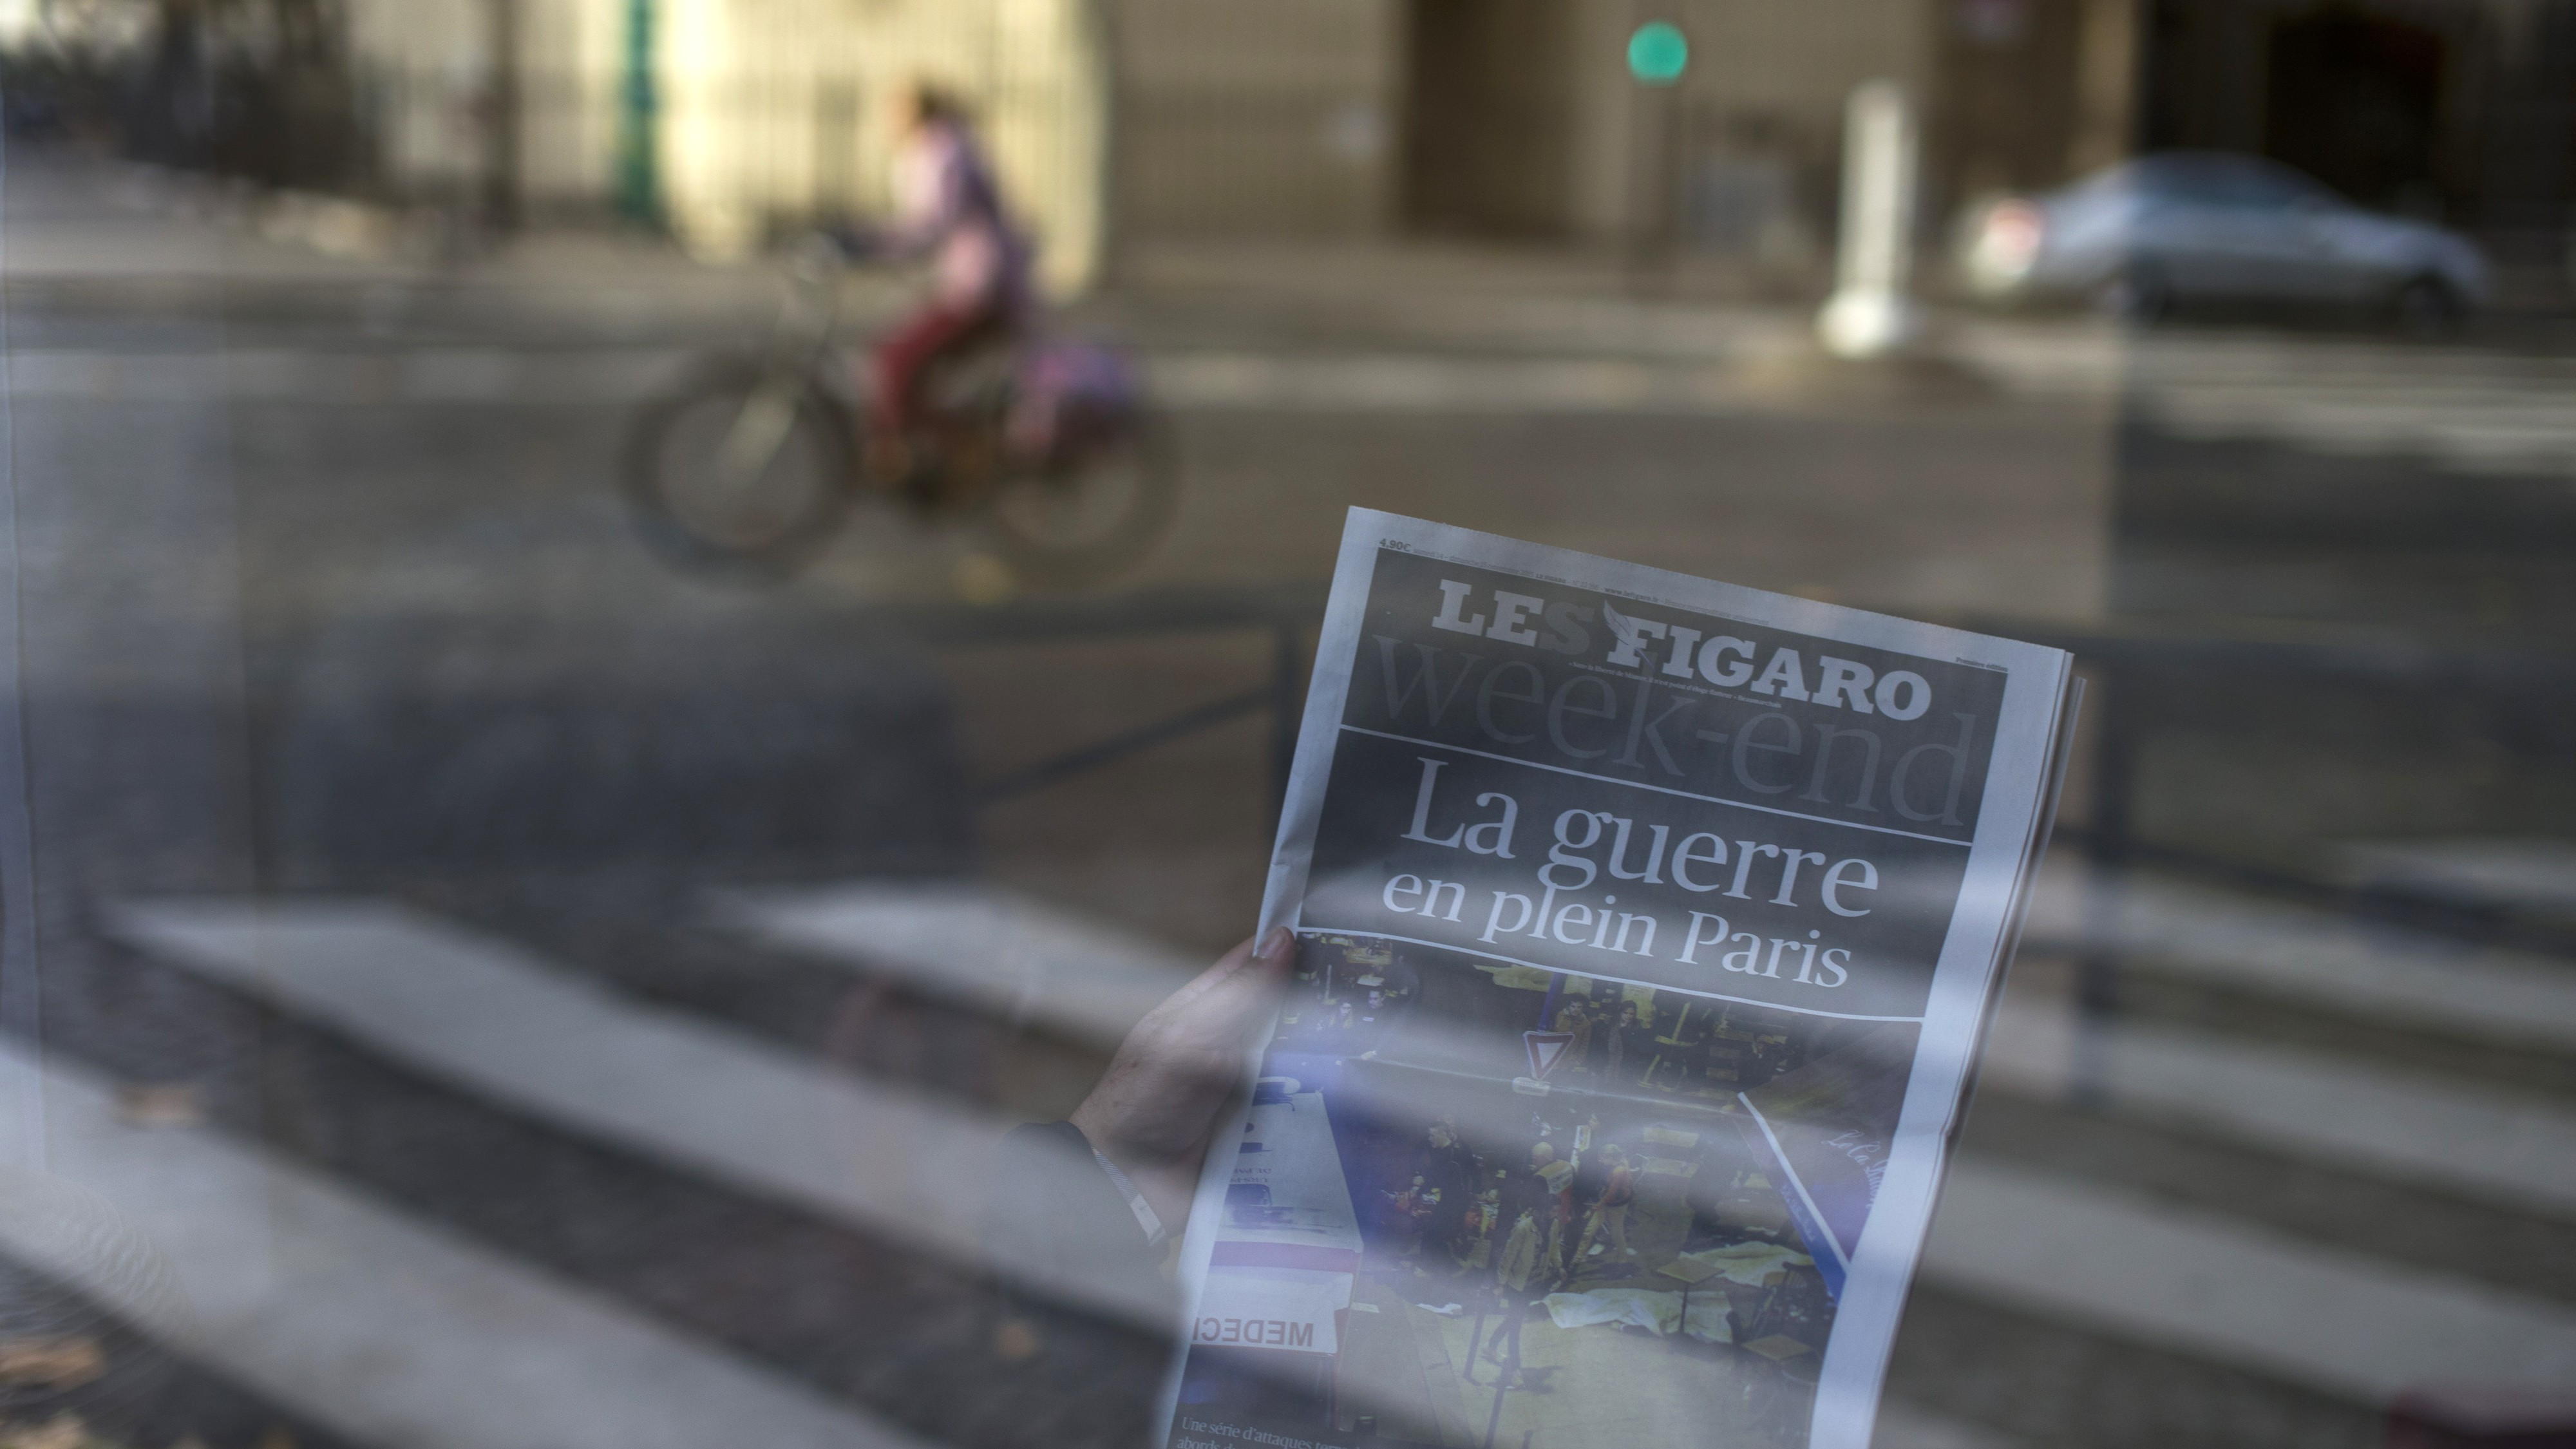 """A man reads a newspaper with a headline reading """"War in the heart of Paris"""" in a hotel lobby in Paris, France, Saturday, Nov. 14, 2015. French police are hunting possible accomplices of eight assailants who terrorized Paris concert-goers, cafe diners and soccer fans in this country's deadliest peacetime attacks, a succession of explosions and shootings that cast a dark shadow over this luminous tourist destination. (AP Photo/Peter Dejong)"""